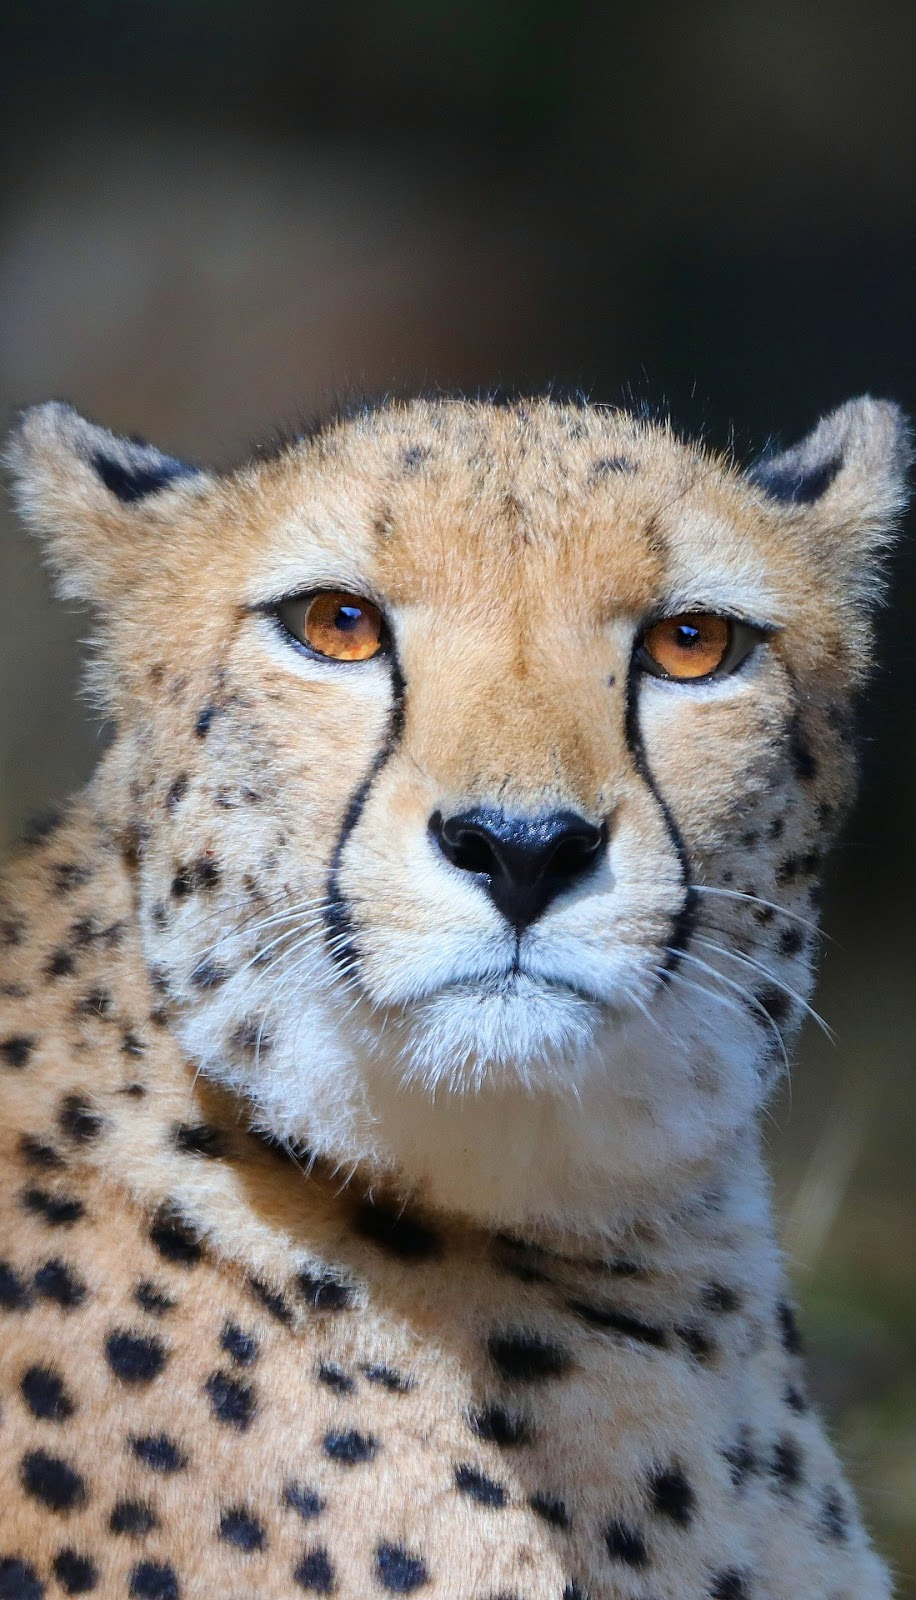 Cheetah portrait.